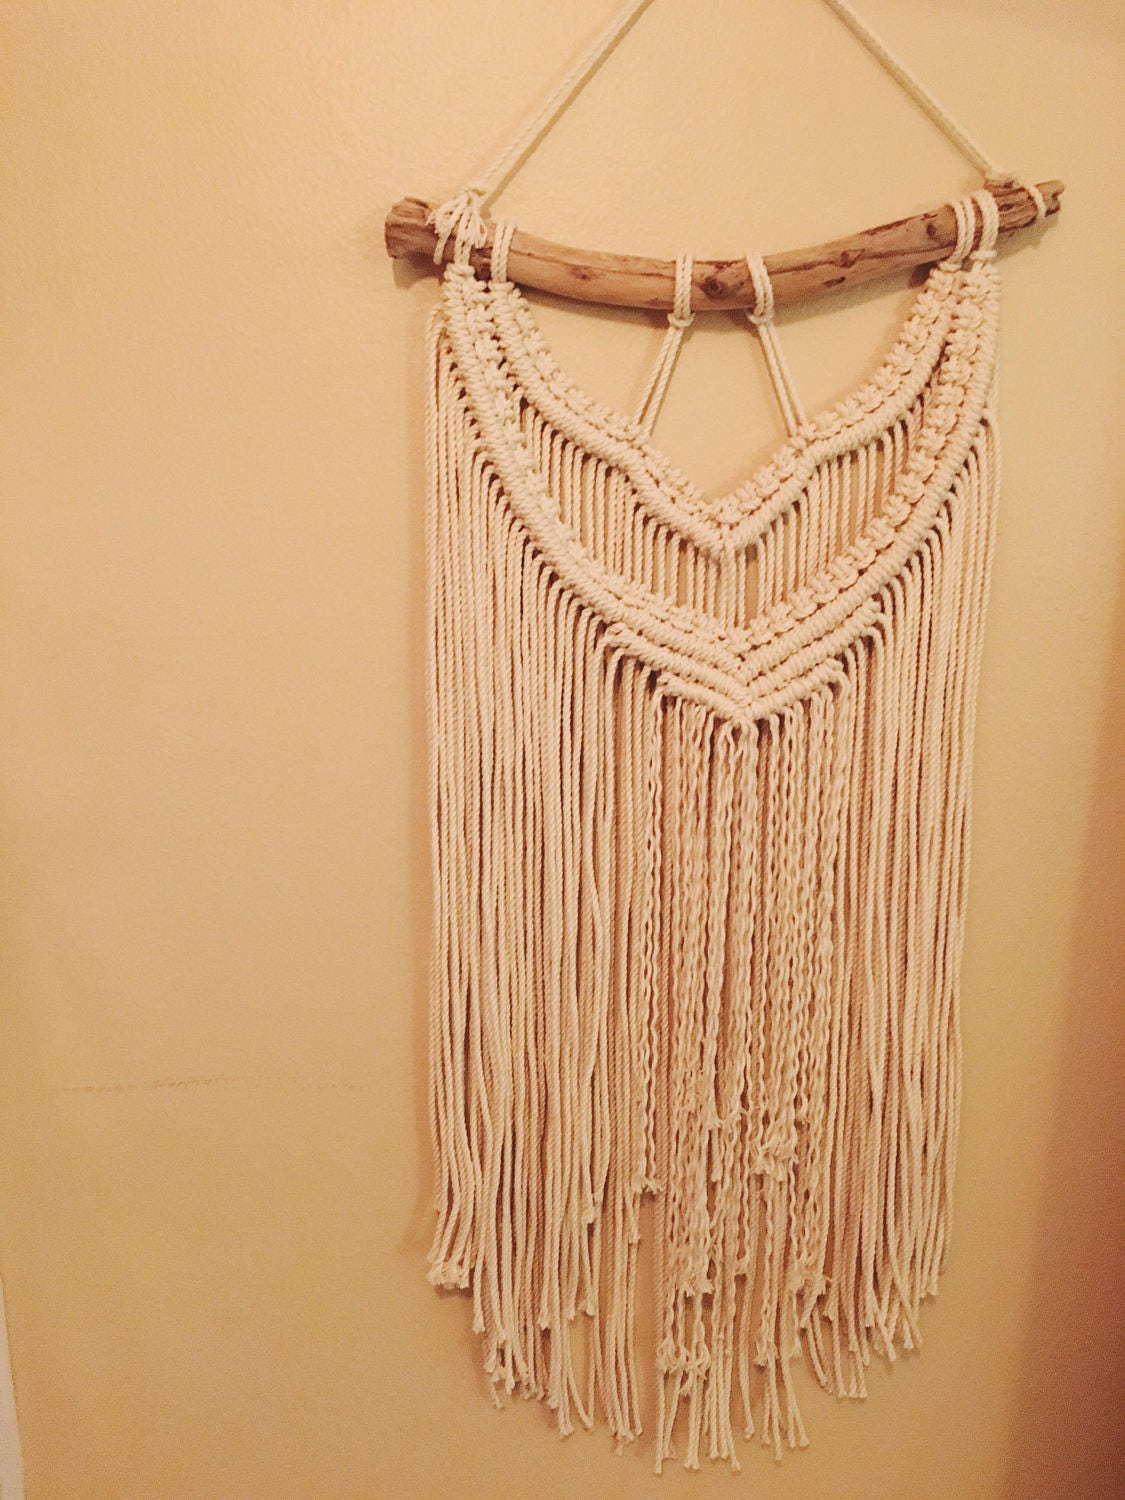 Wall Hanging Macrame with Driftwood